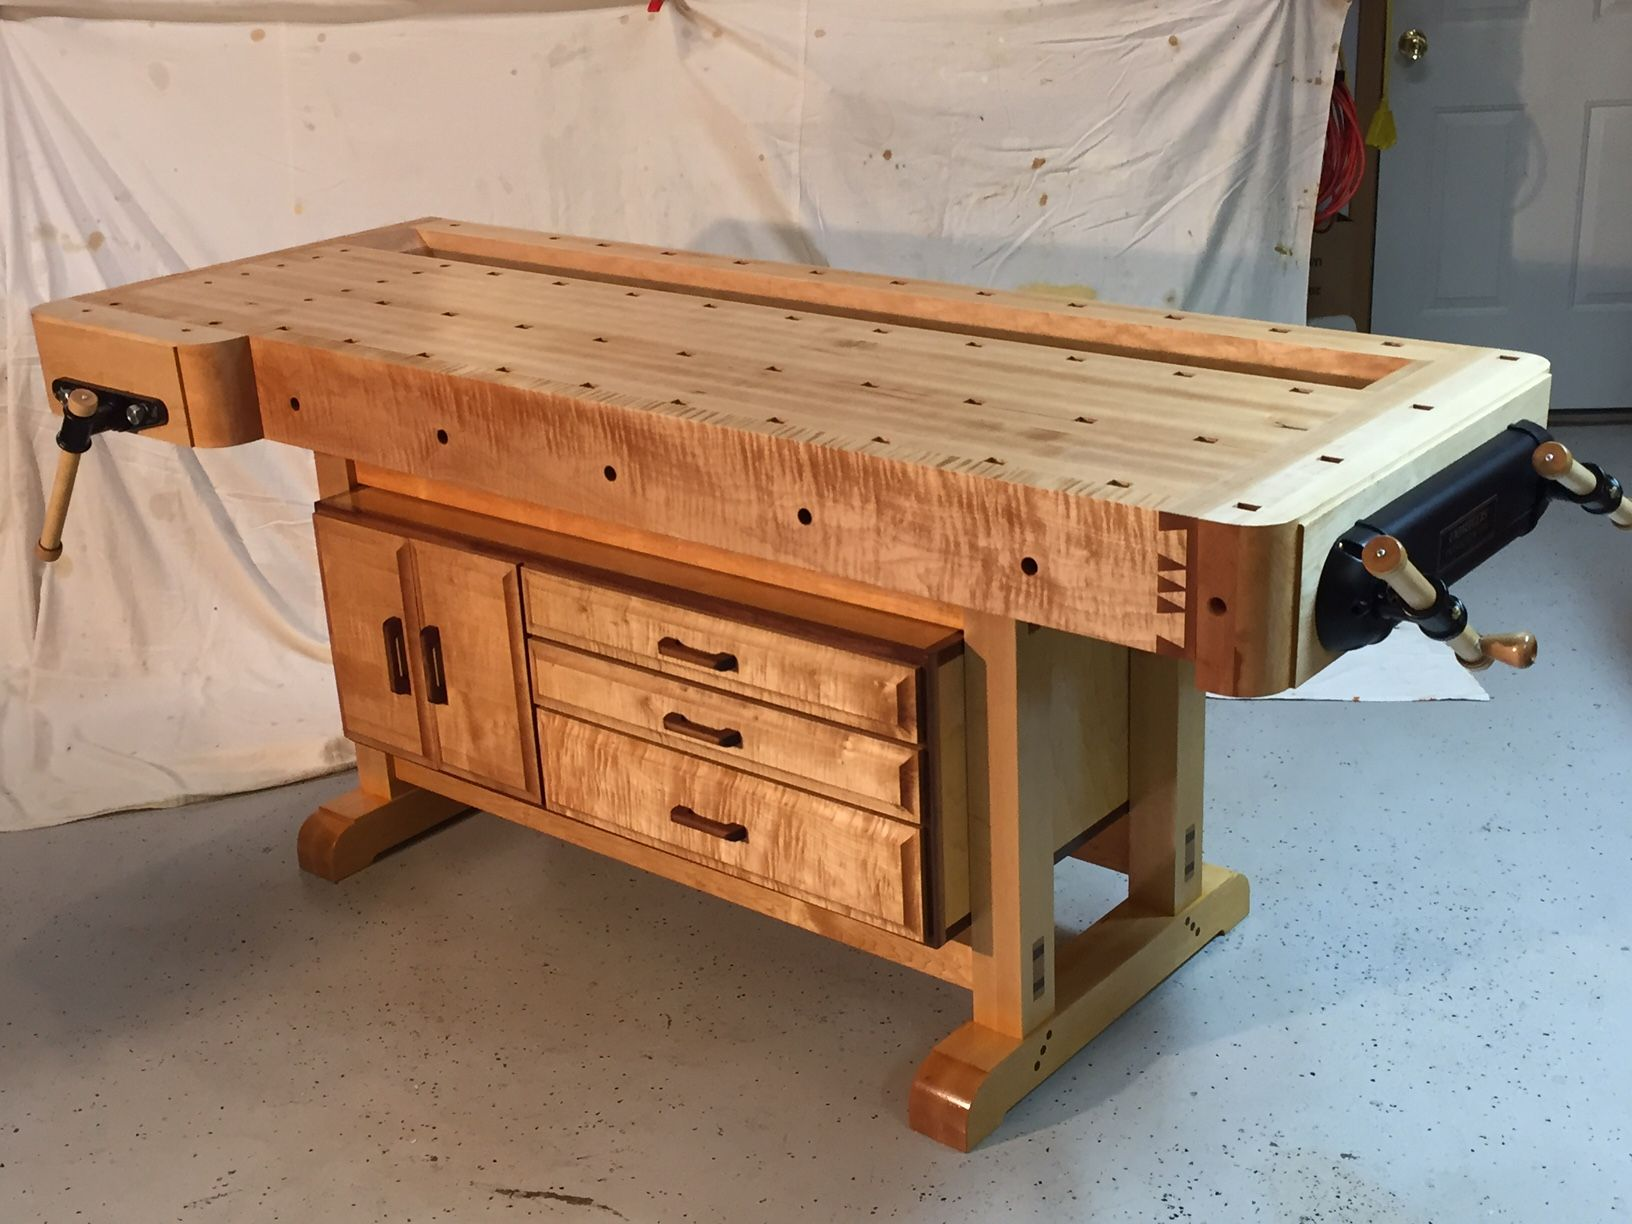 medium resolution of woodworking vice woodworking shop layout woodworking workbench workbench designs woodworking projects